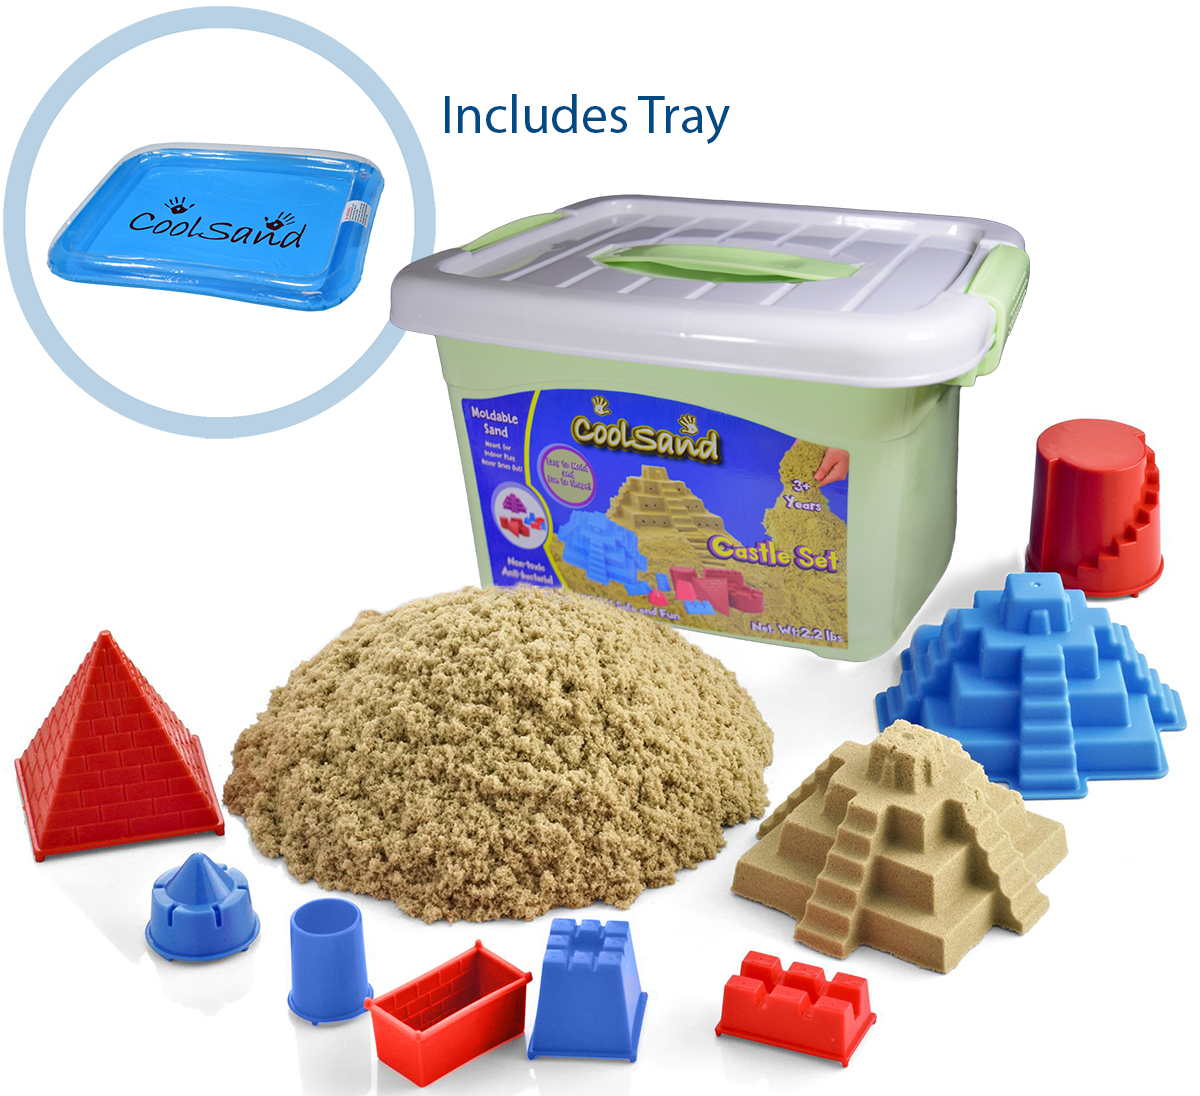 CoolSand Deluxe Bucket Kinetic Play Sand With Inflatable Sandbox - Castle Set Edition